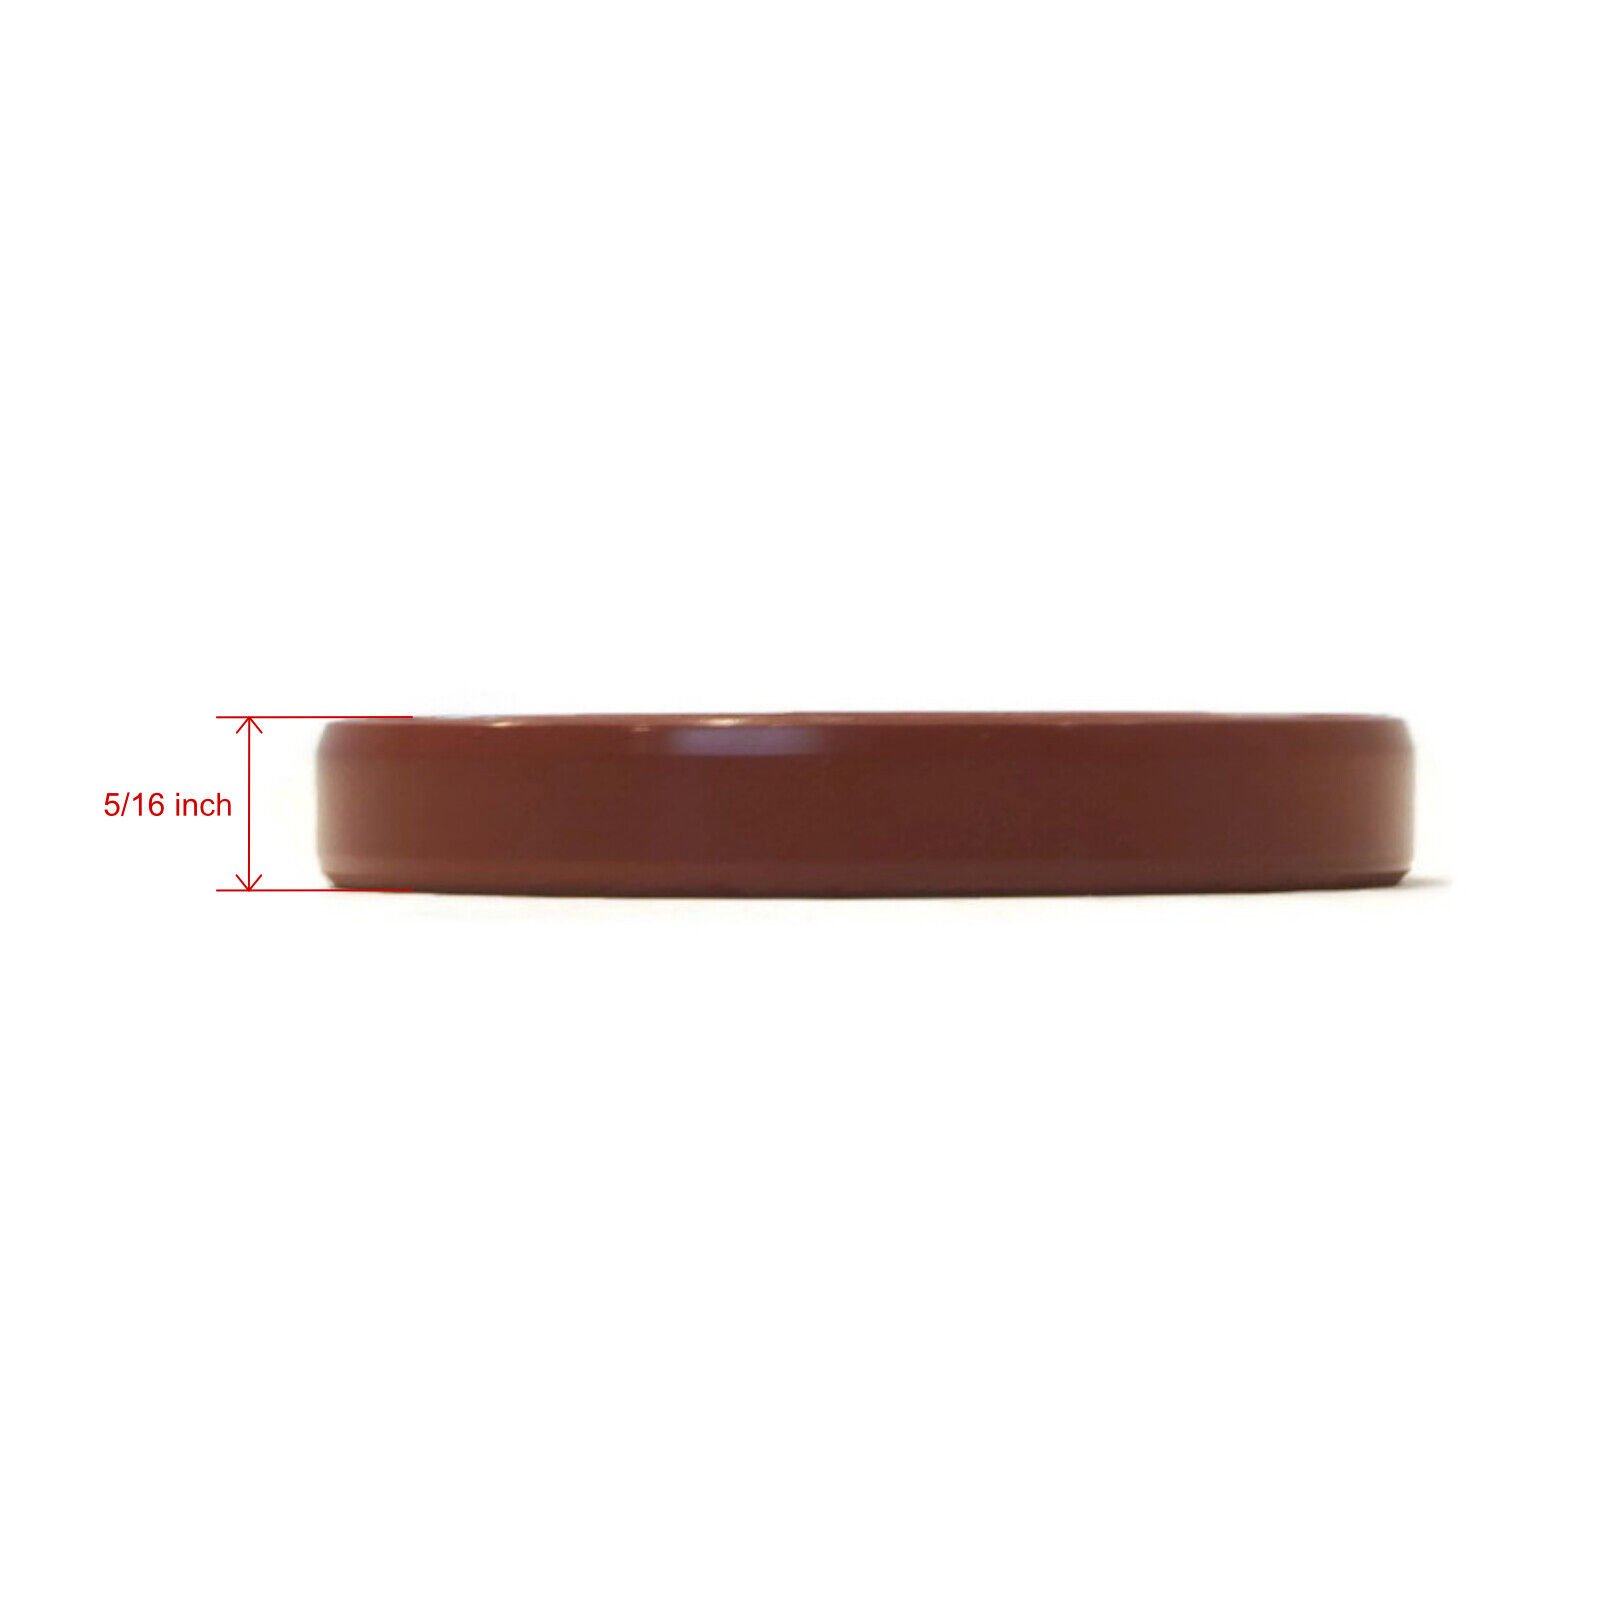 309515003 The ROP Shop Oil Seal for Homelite 308653035 FH 308653052 Pressure Washer Pumps